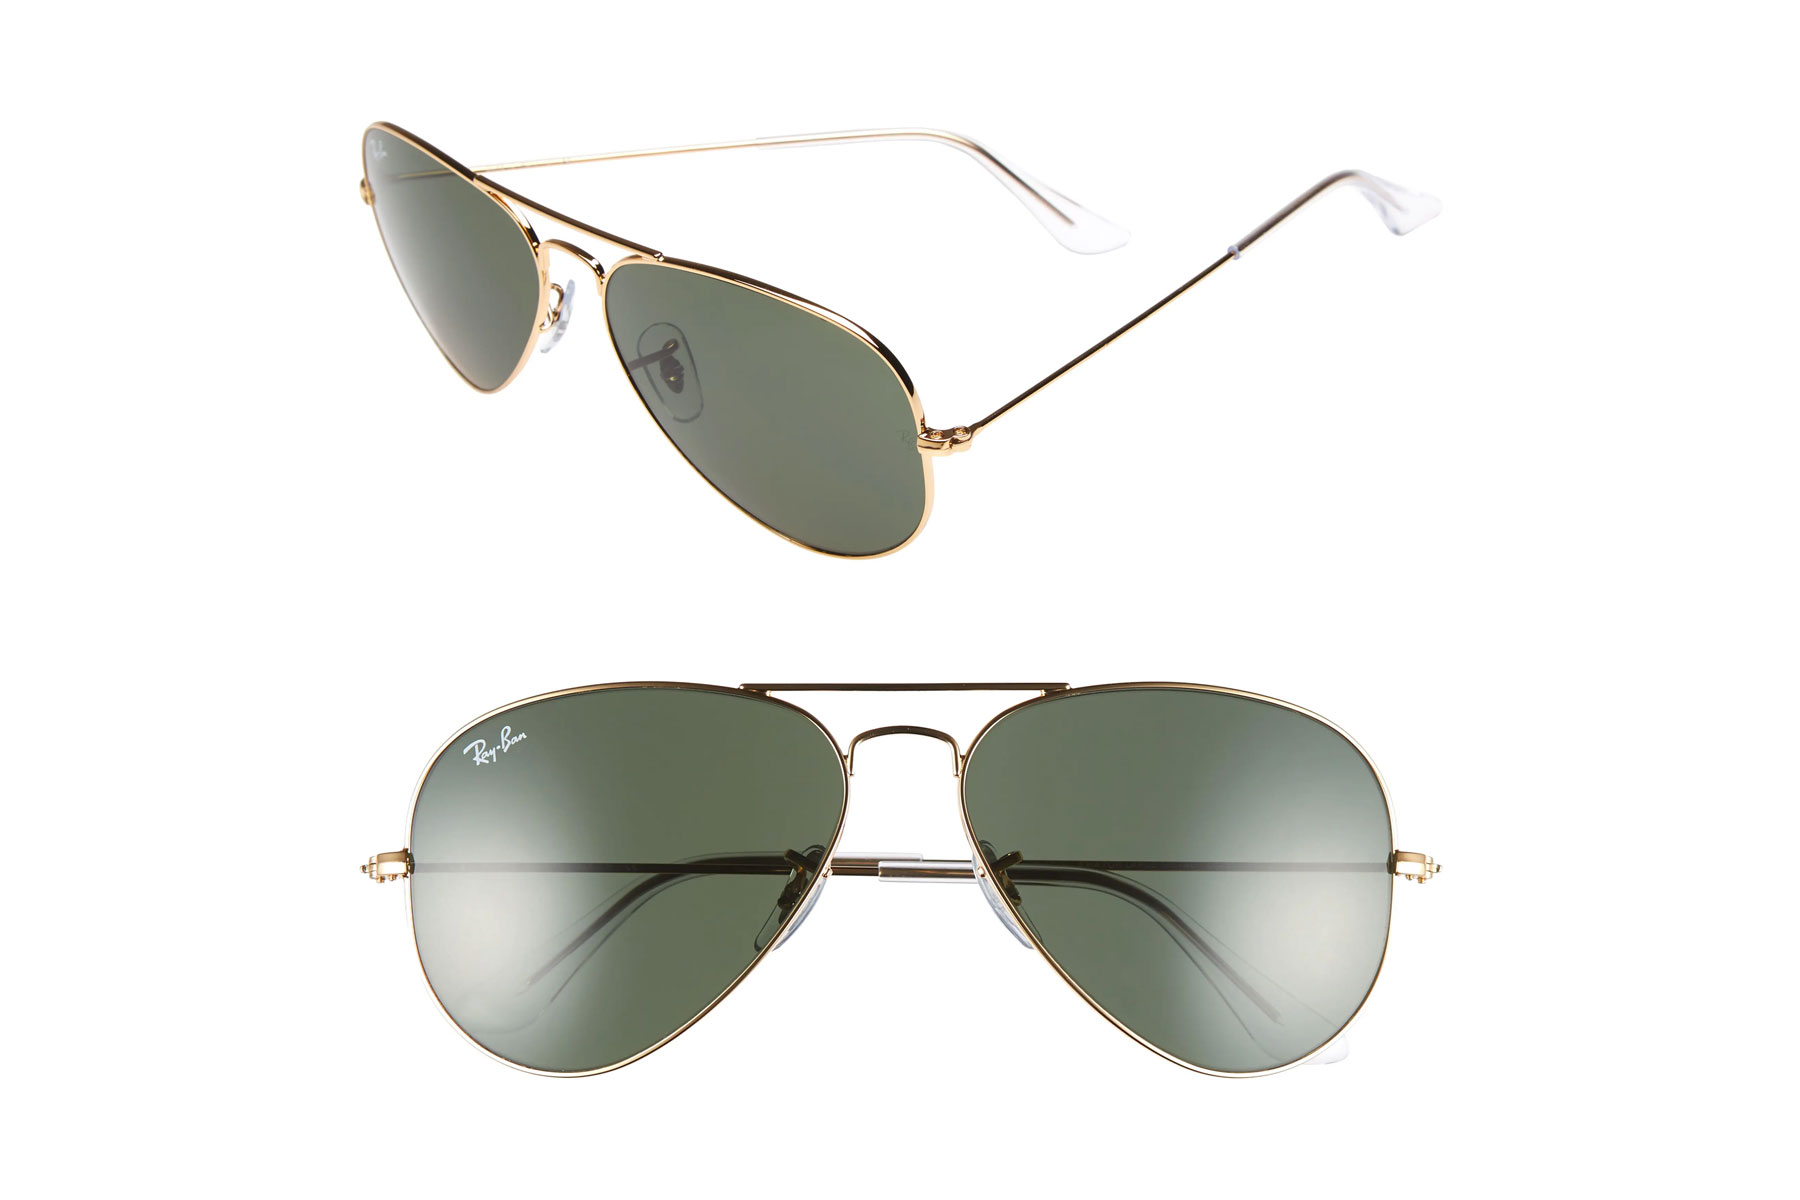 Ray-ban aviator sunglasses with gold